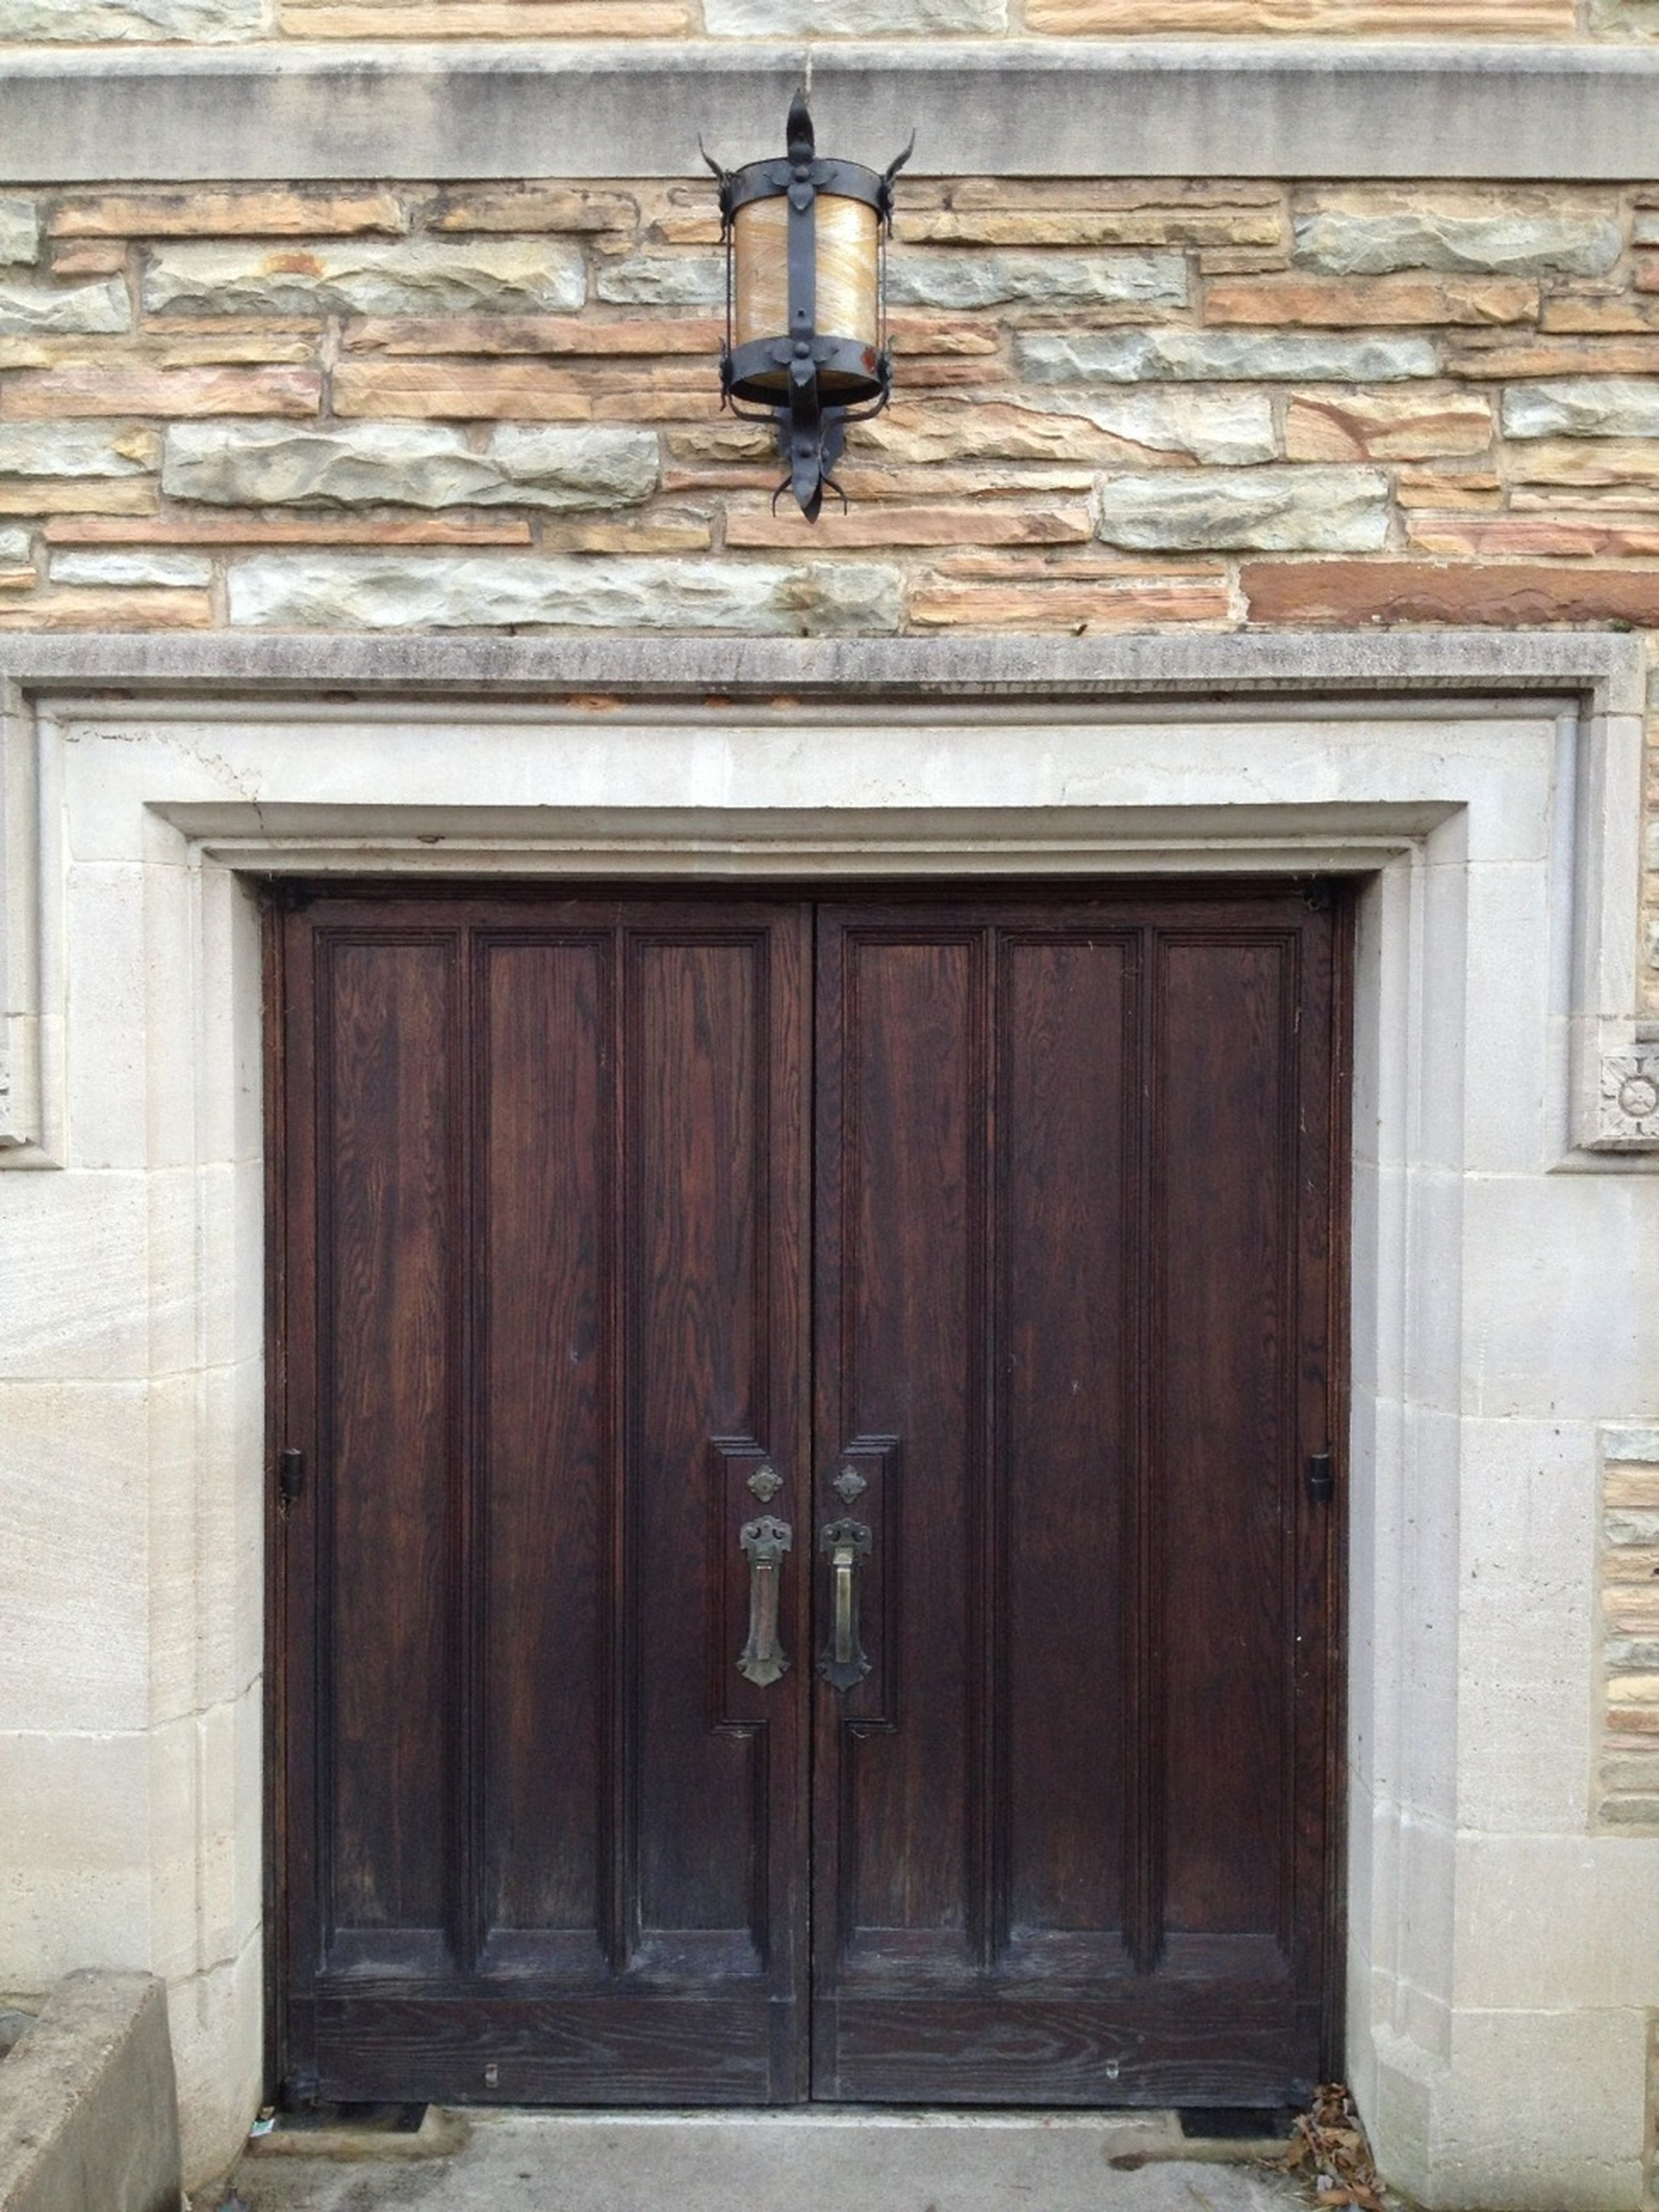 built structure, architecture, door, building exterior, closed, entrance, house, wood - material, safety, lighting equipment, protection, wall - building feature, day, doorway, security, wall, building, outdoors, no people, closed door